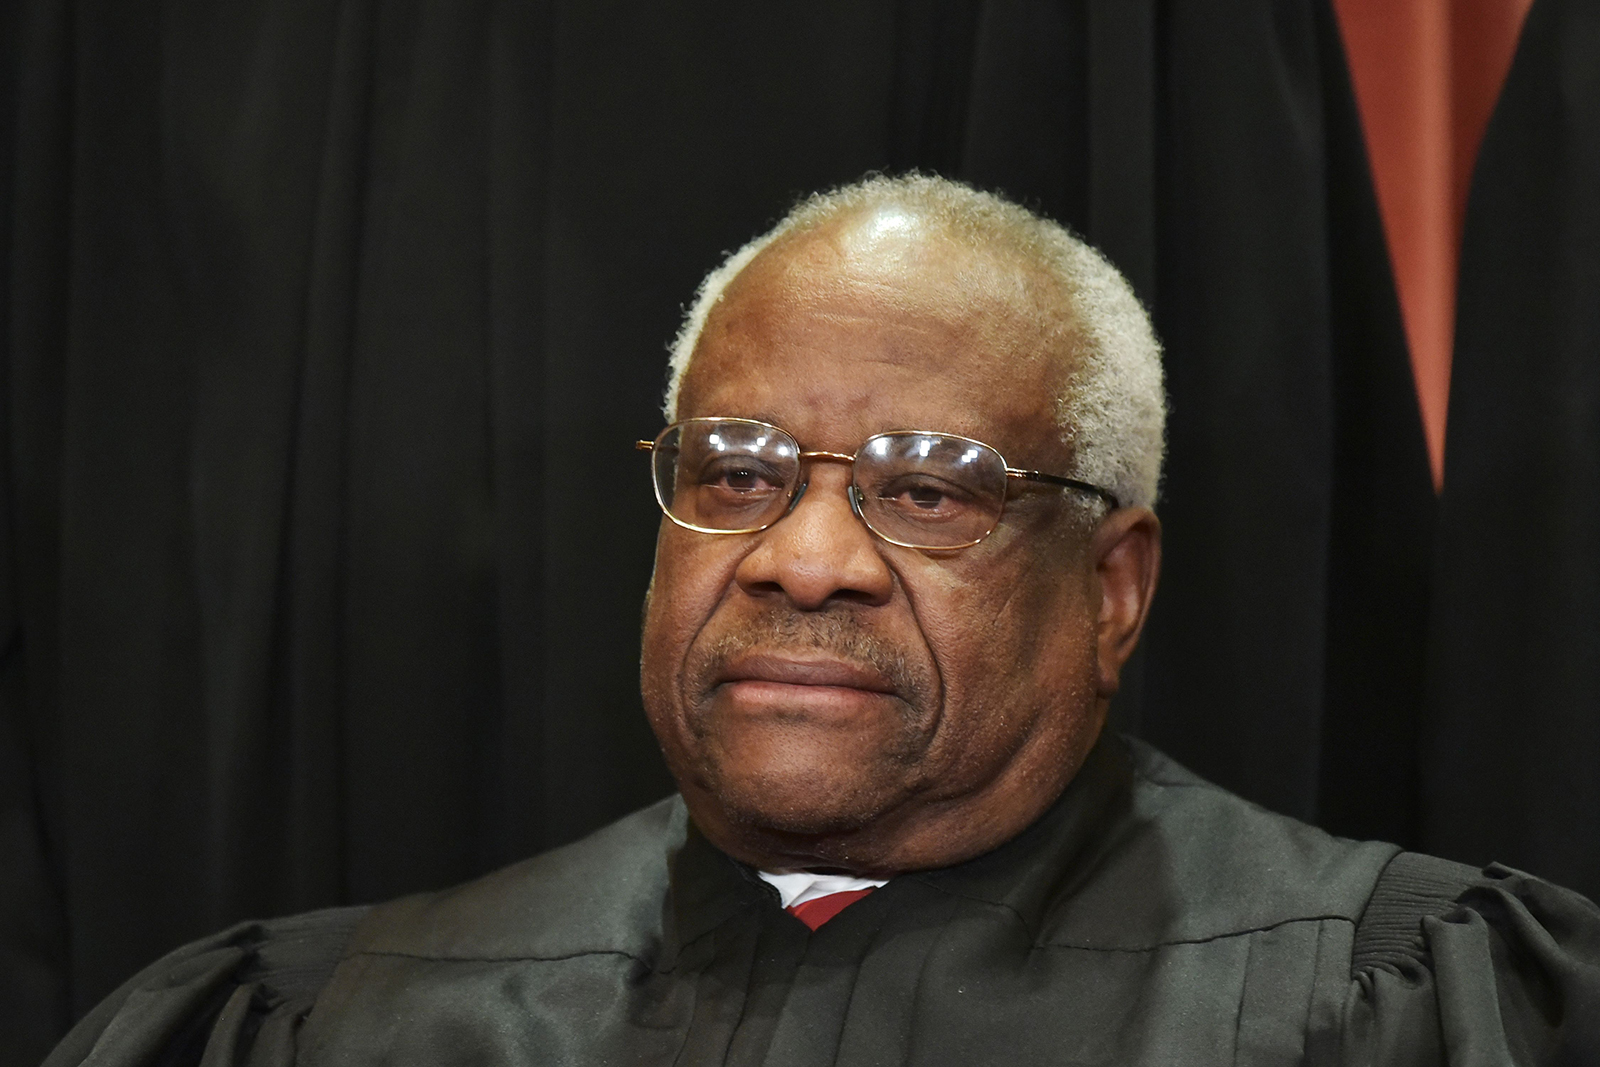 Associate Justice Clarence Thomas poses for the official group photo at the US Supreme Court in Washington, on November 30, 2018.